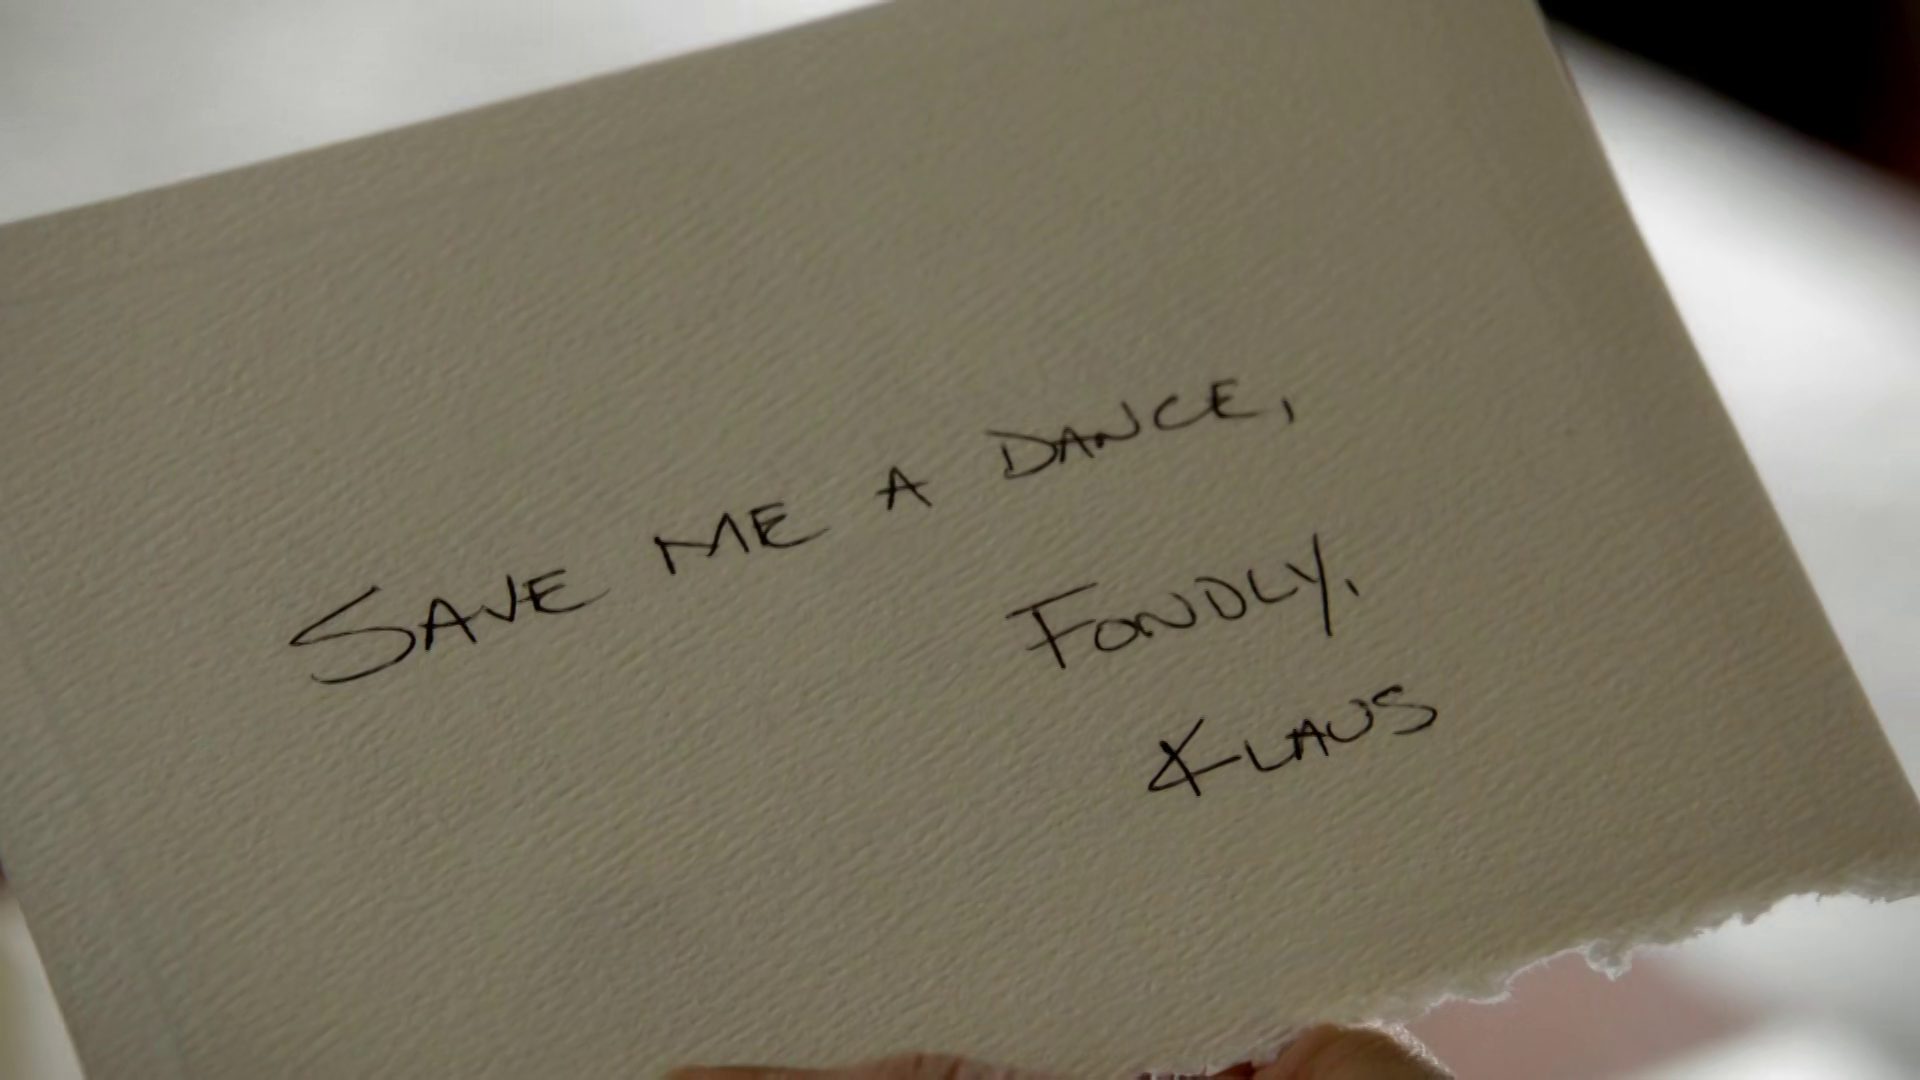 File:Klaus' note at the back of the invitation.png